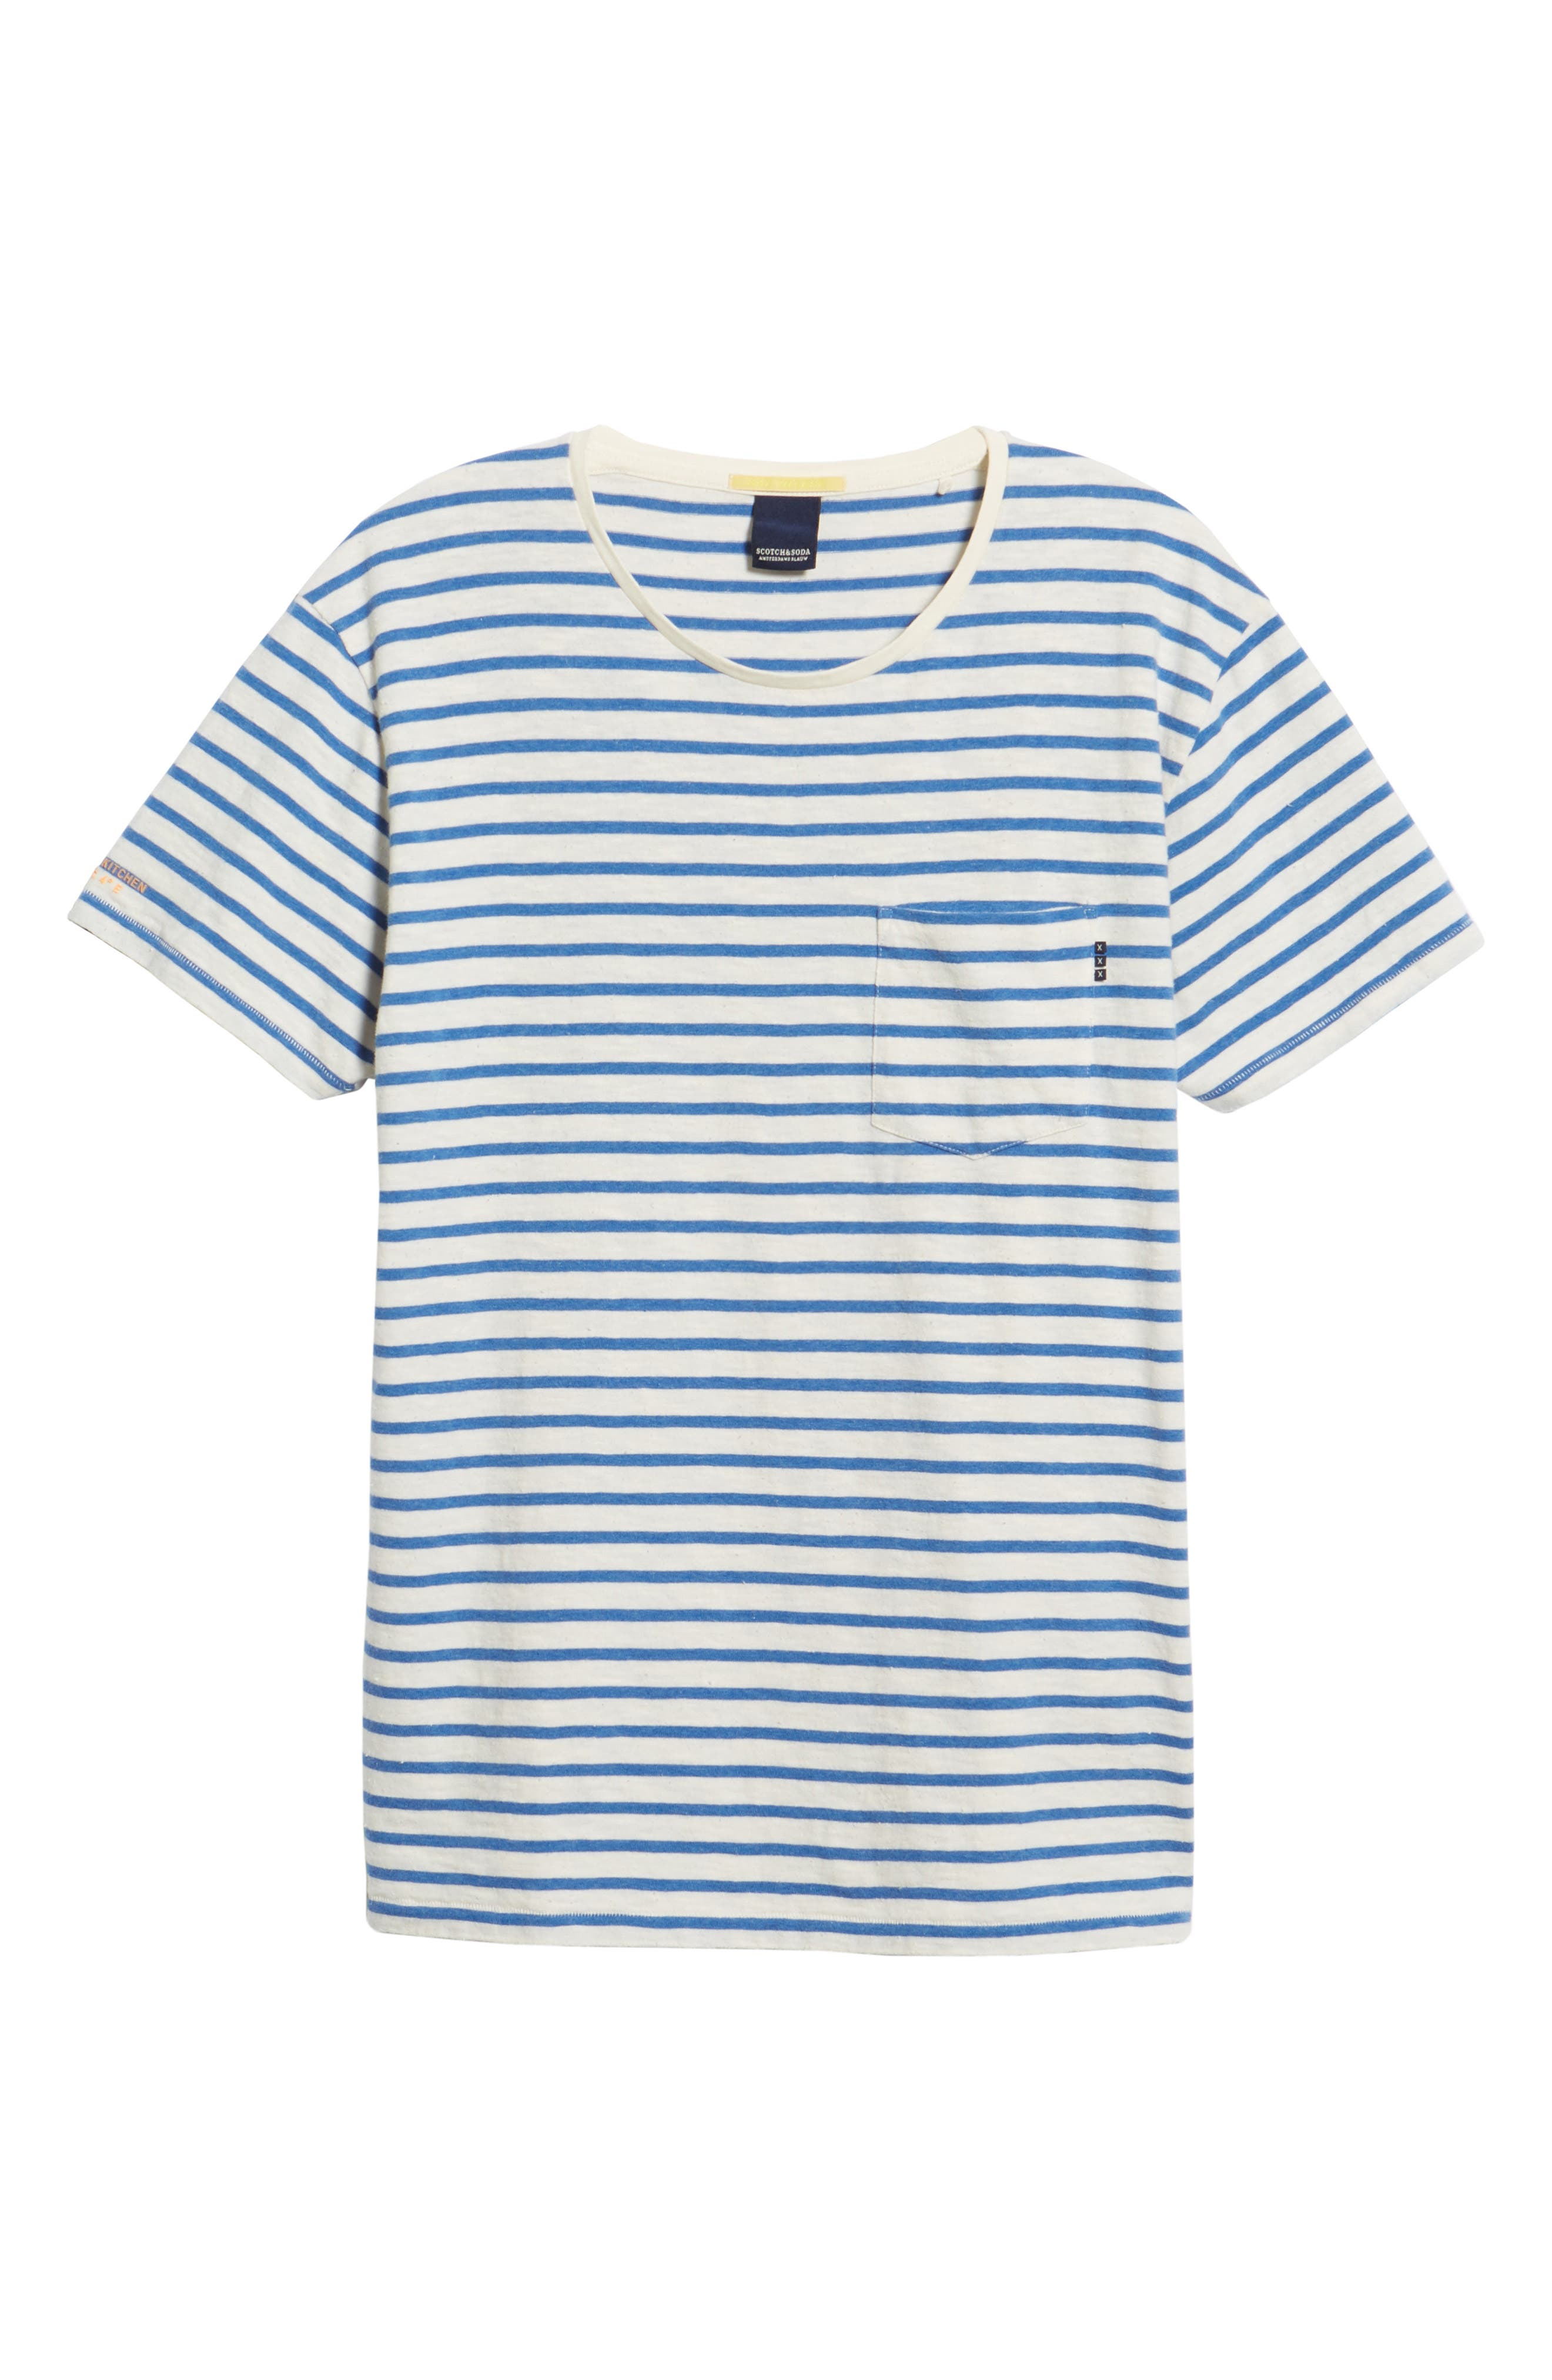 Stripe Pocket T-Shirt,                             Alternate thumbnail 6, color,                             110